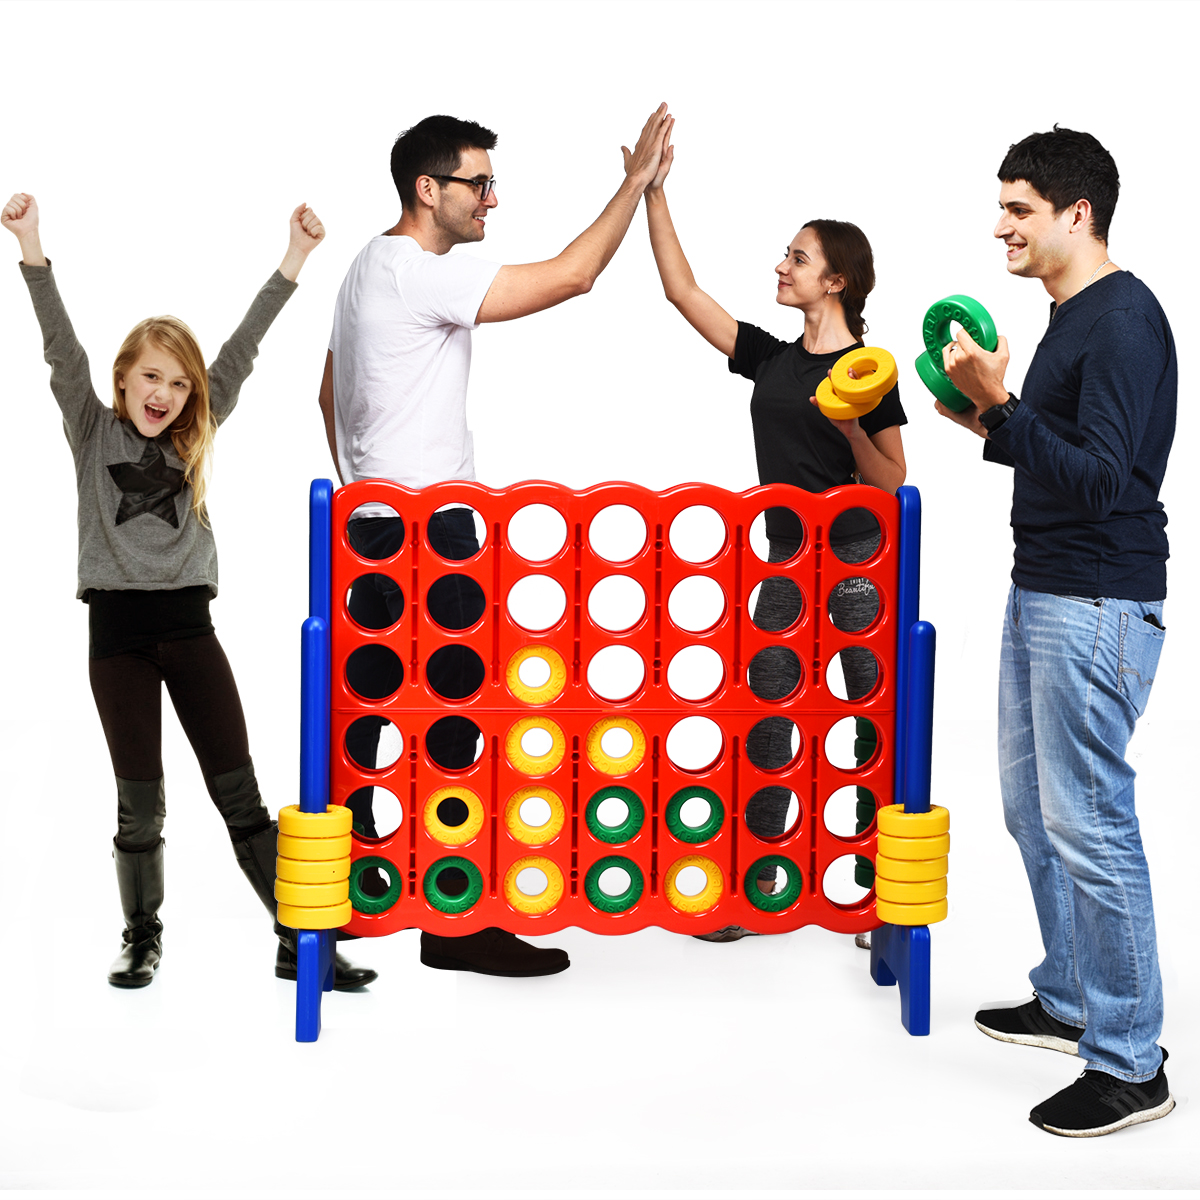 Jumbo 4-to-Score 4 In A Row Giant Game Set Kids Adults Family Fun Indoor Garden